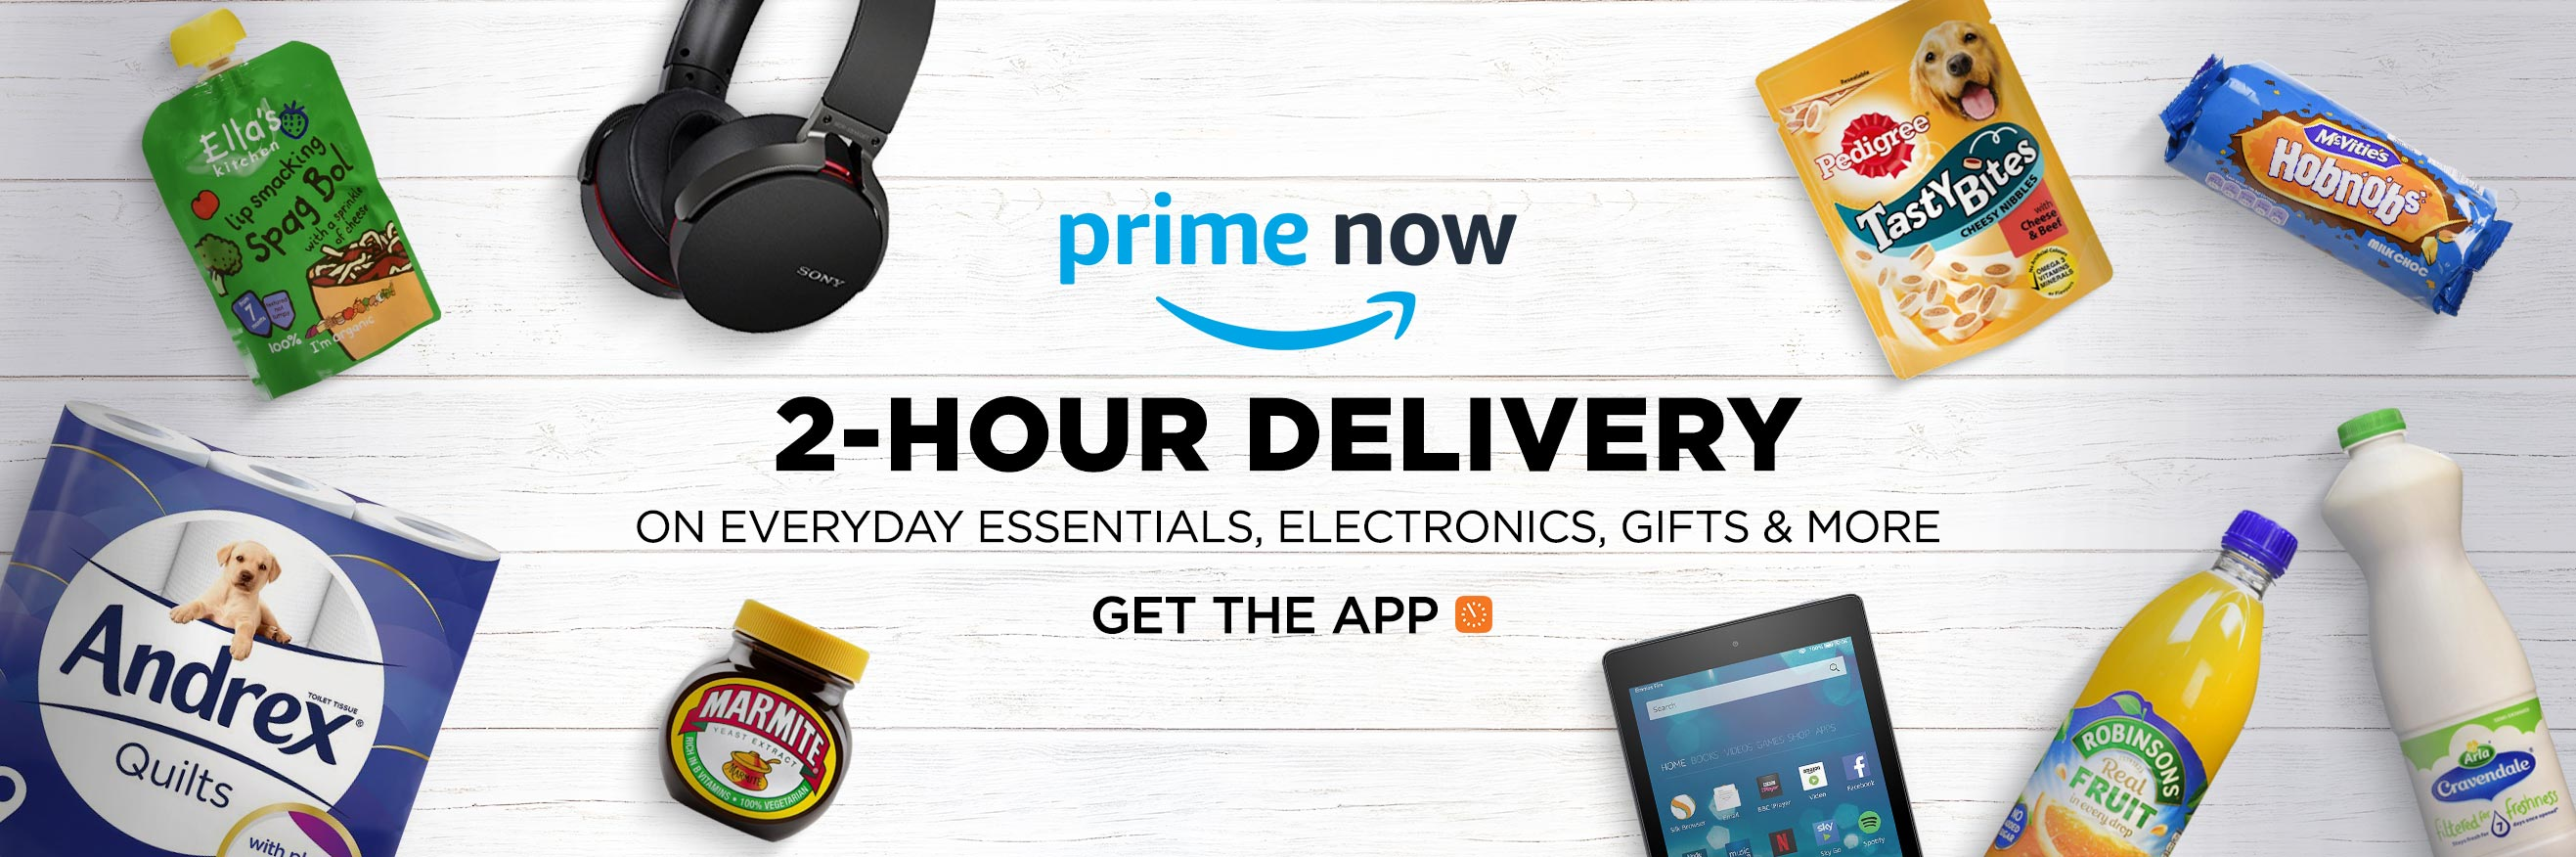 Prime Now: 2-Hour delivery on everyday essentials, gifts, and more.